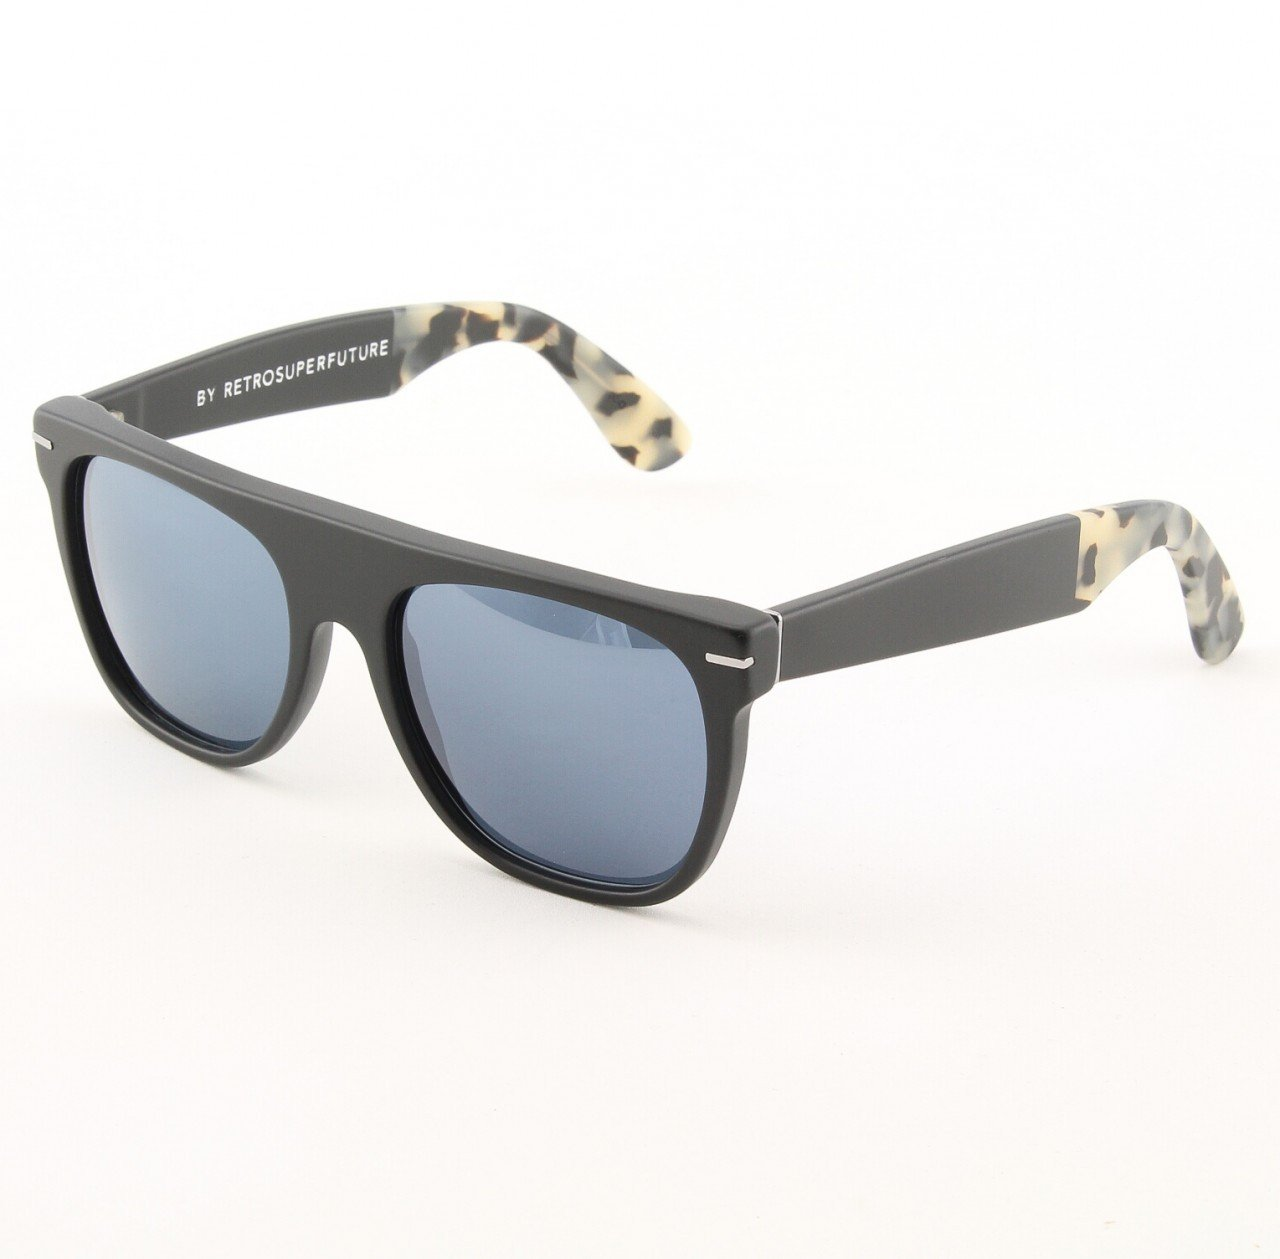 Super Flat Top 907/3T Sunglasses Black Puma with Blue Zeiss Lenses by RETROSUPERFUTURE